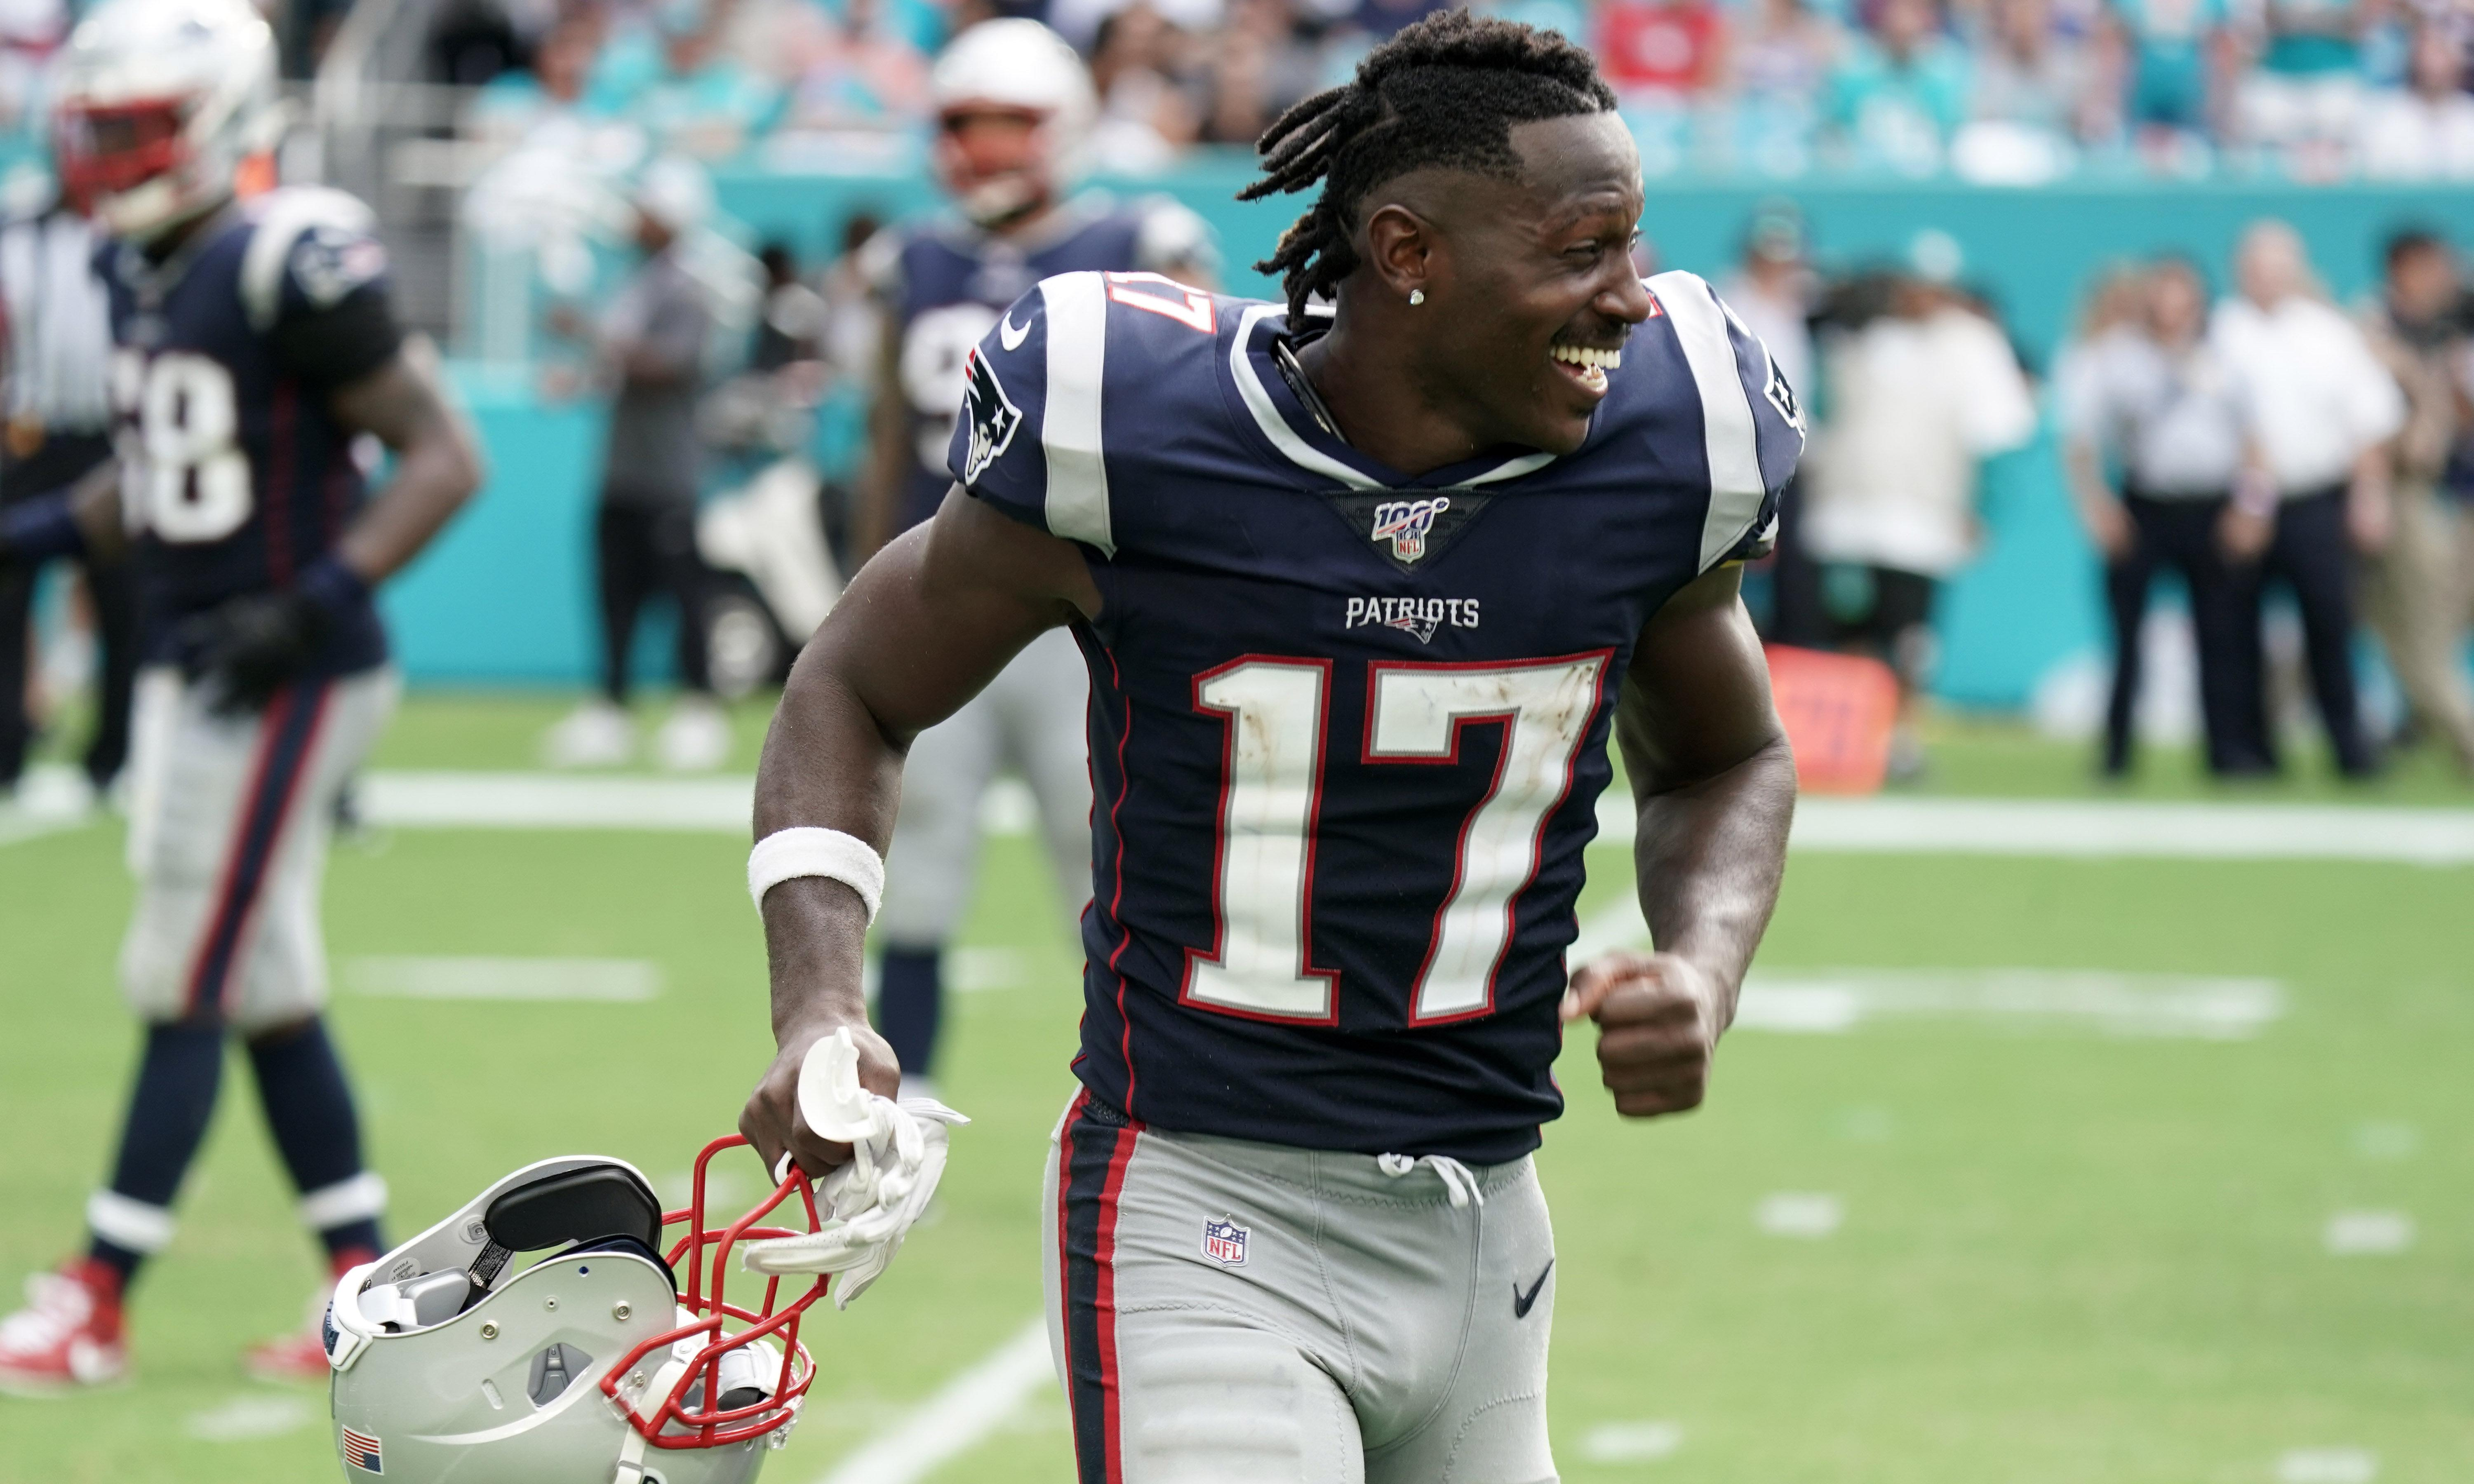 NFL round-up: Brown catches TD in Patriots debut; Roethlisberger hurt in Steelers loss